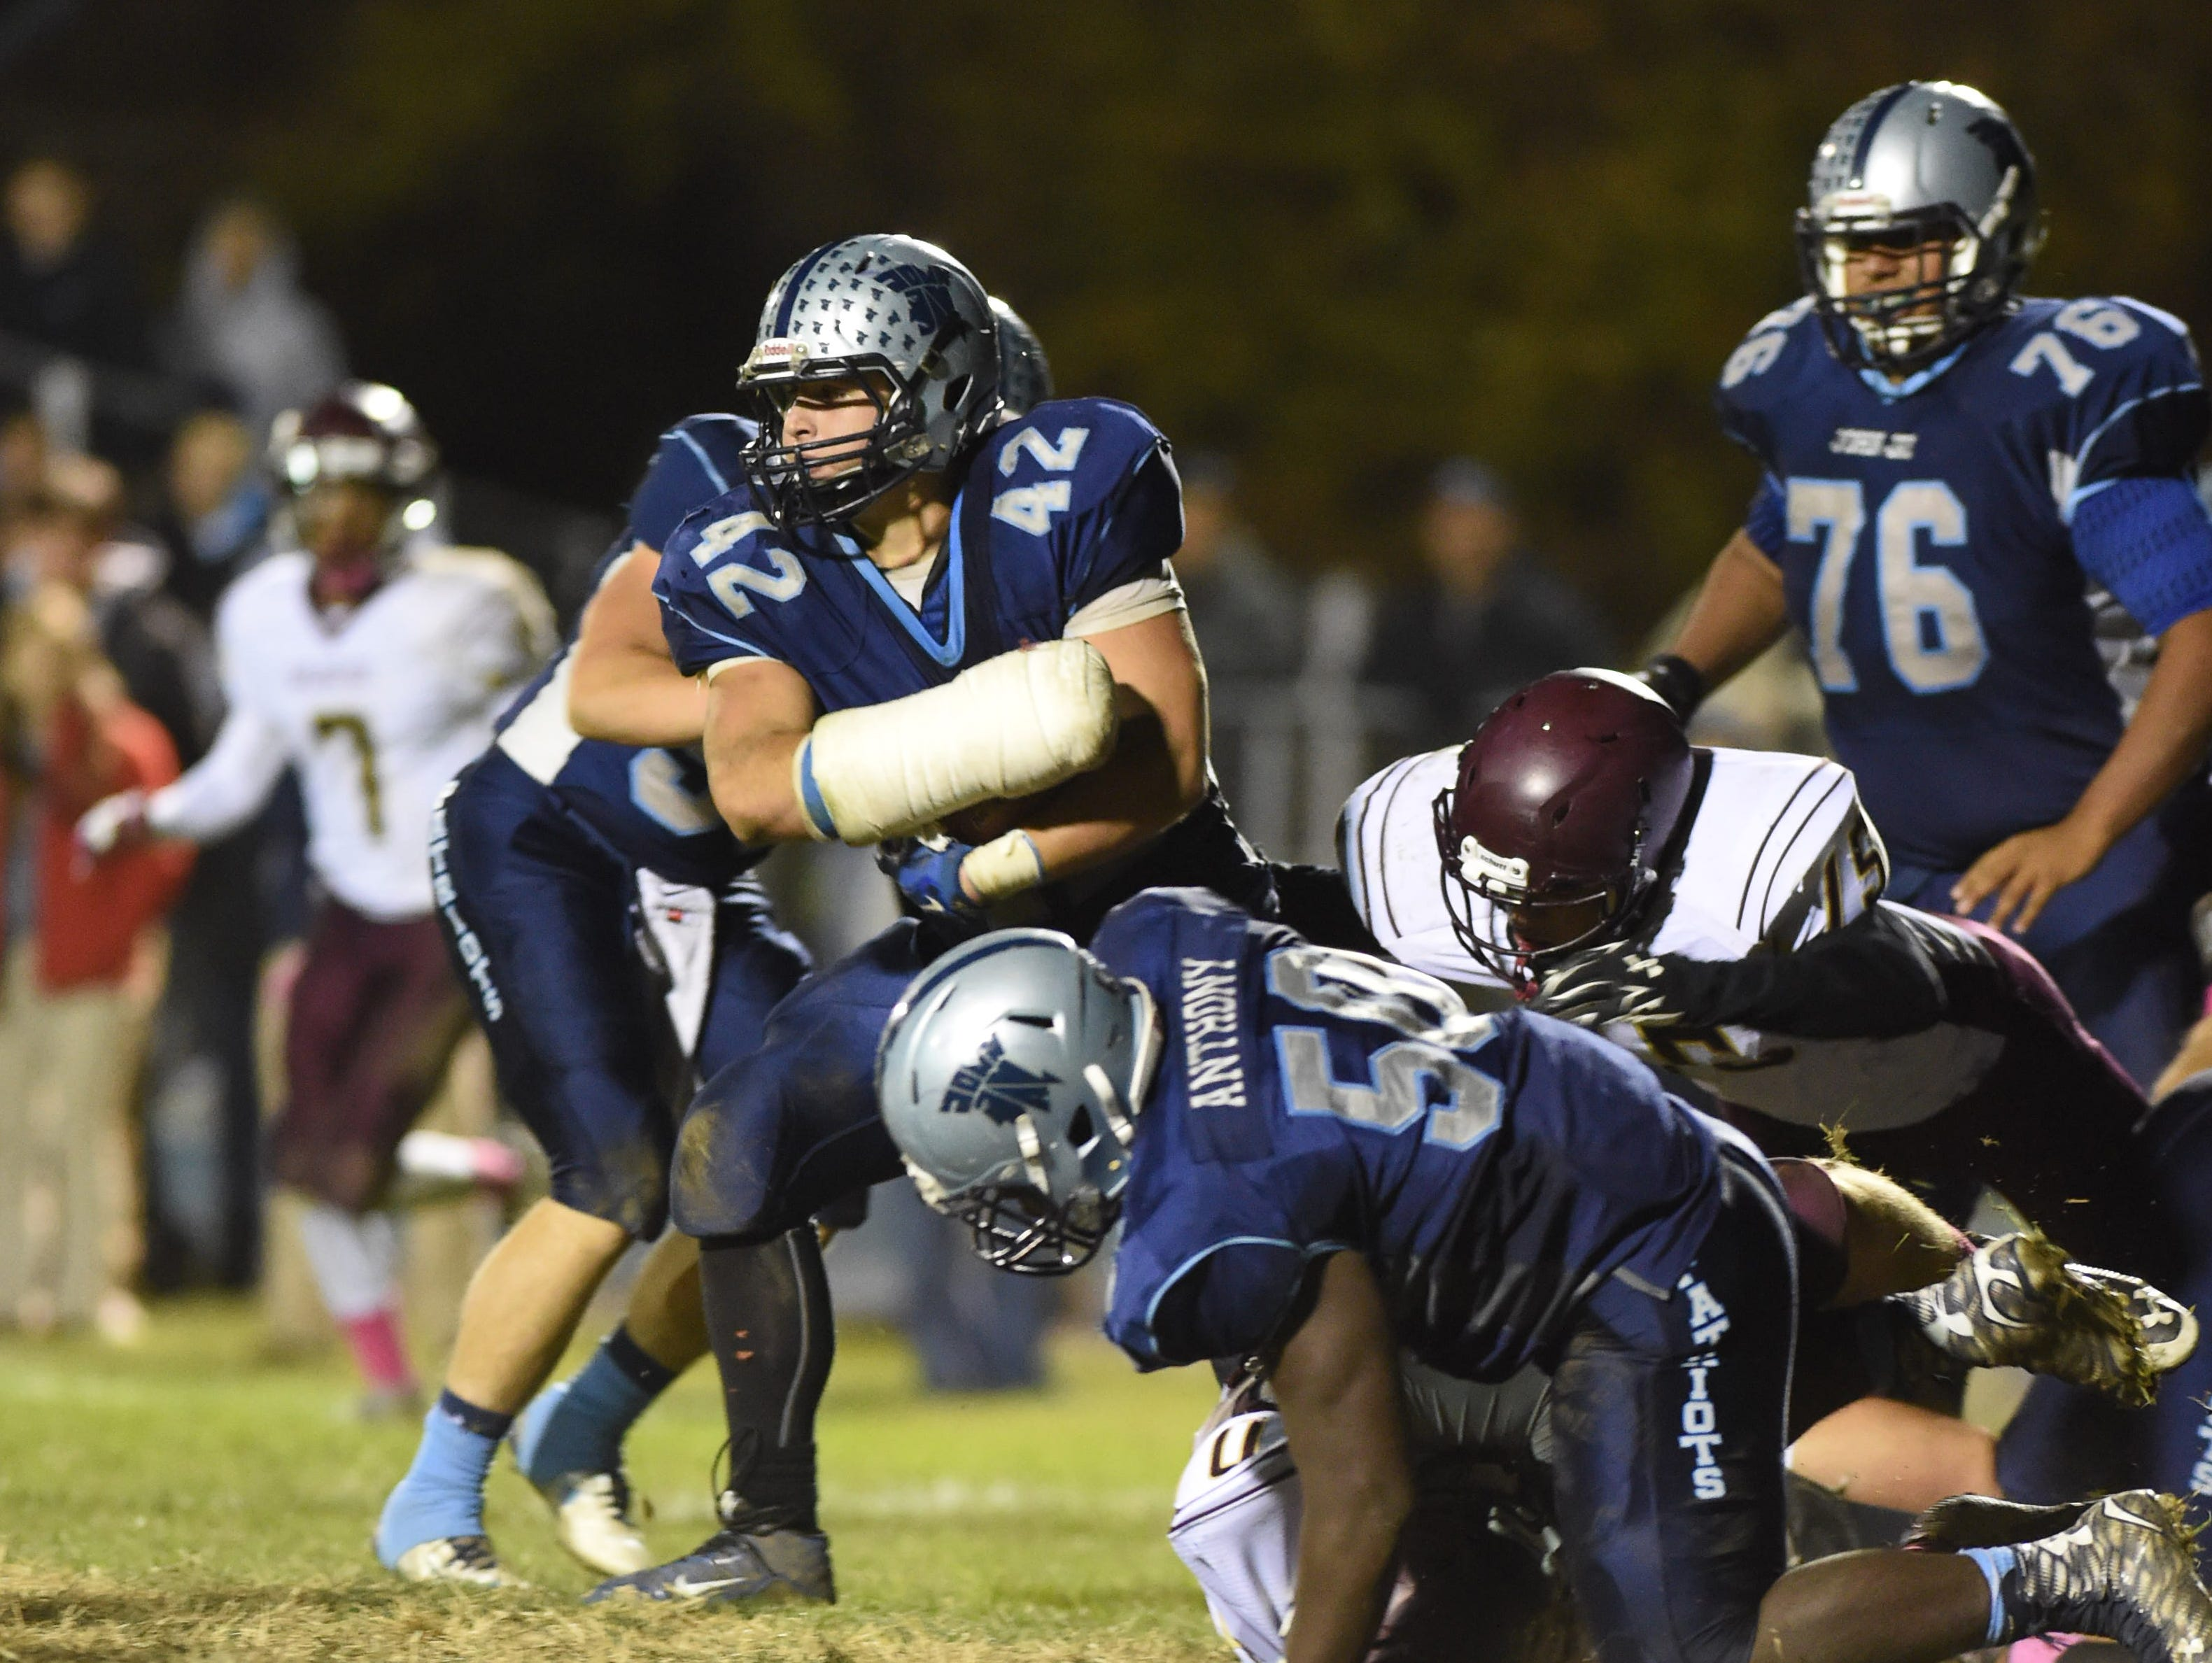 John Jay's Frank DiFusco carries the ball through Arlington's defense during Friday's game in Wiccopee.